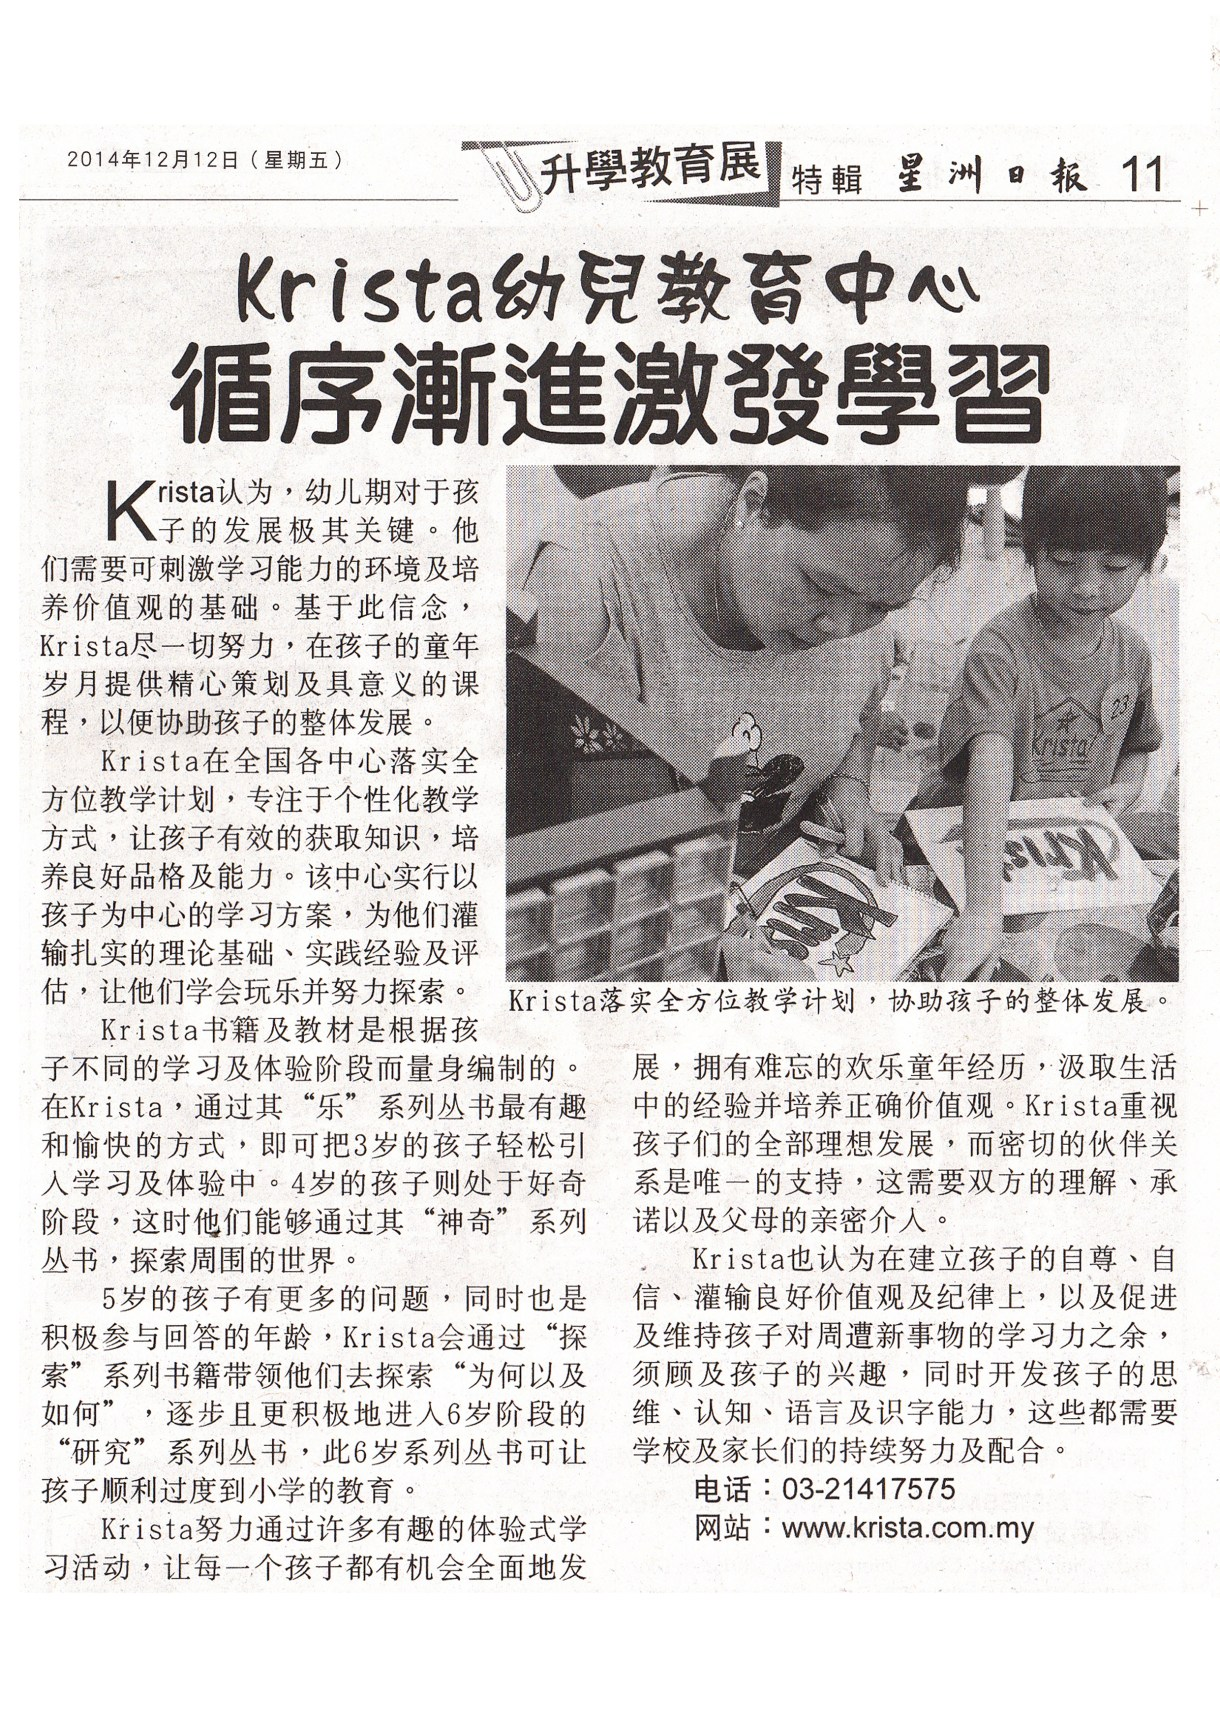 krista-article-sin-chew-12122014